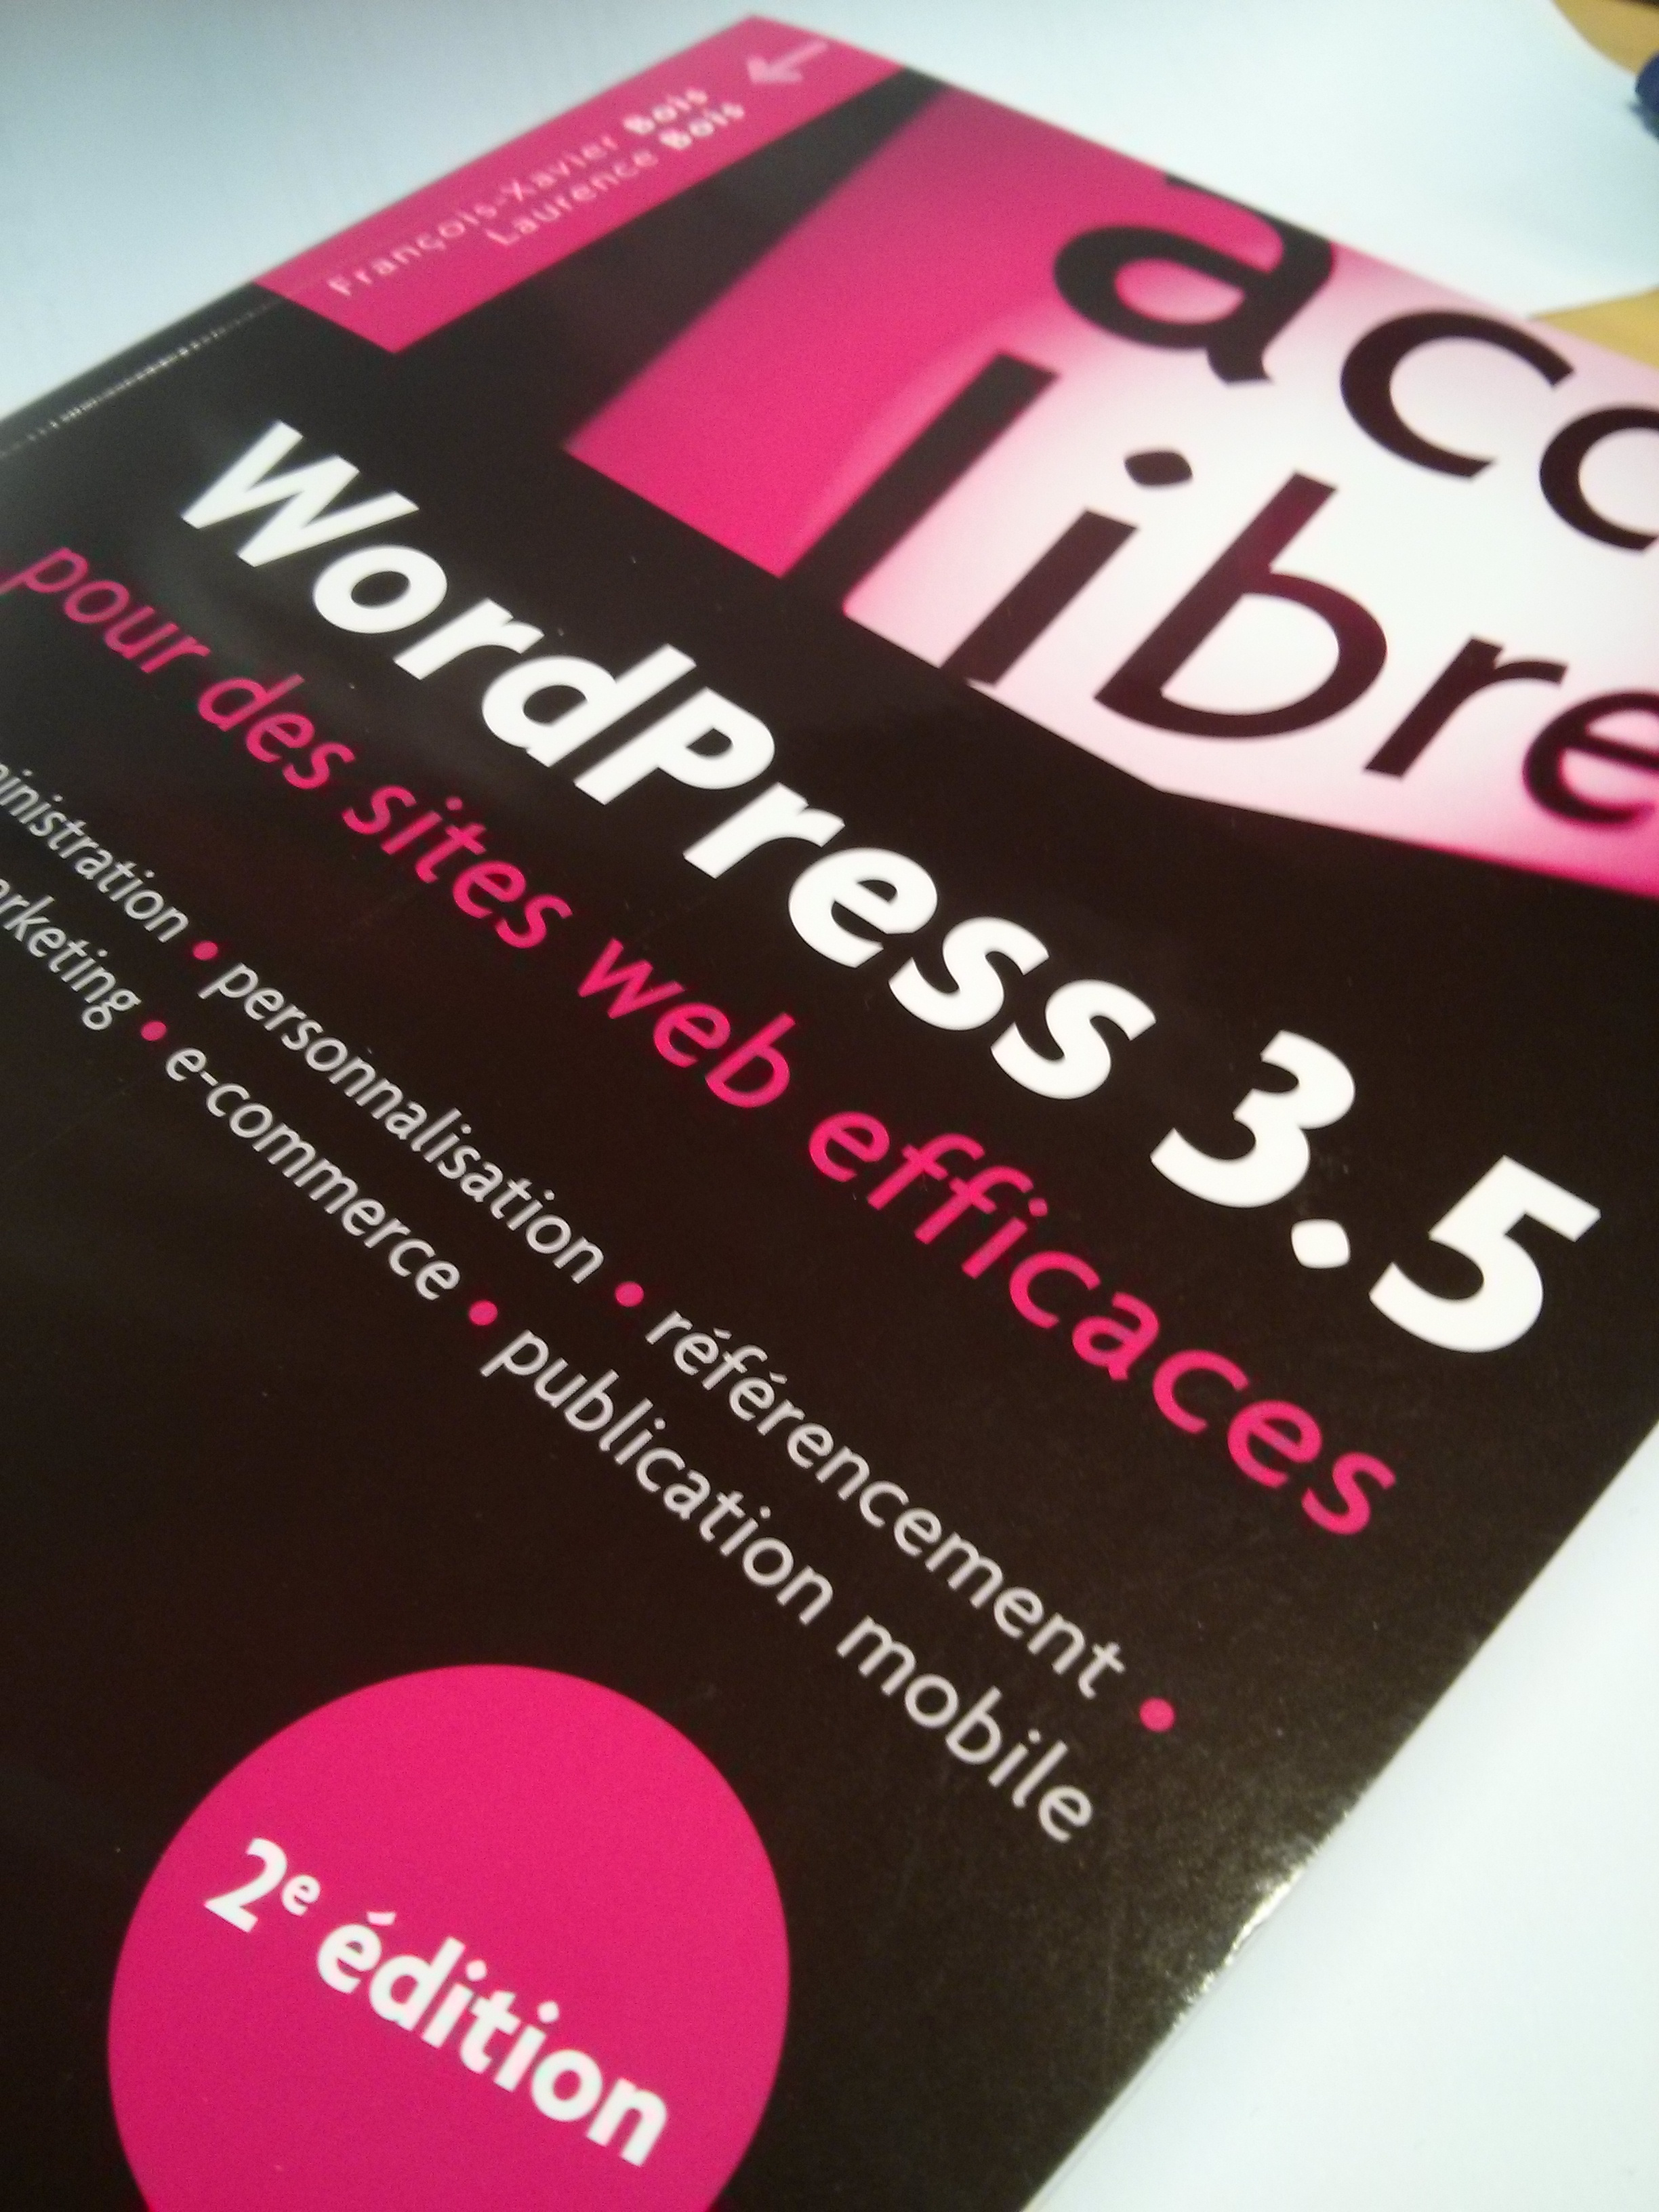 WordPress3.5 pour des sites web efficaces